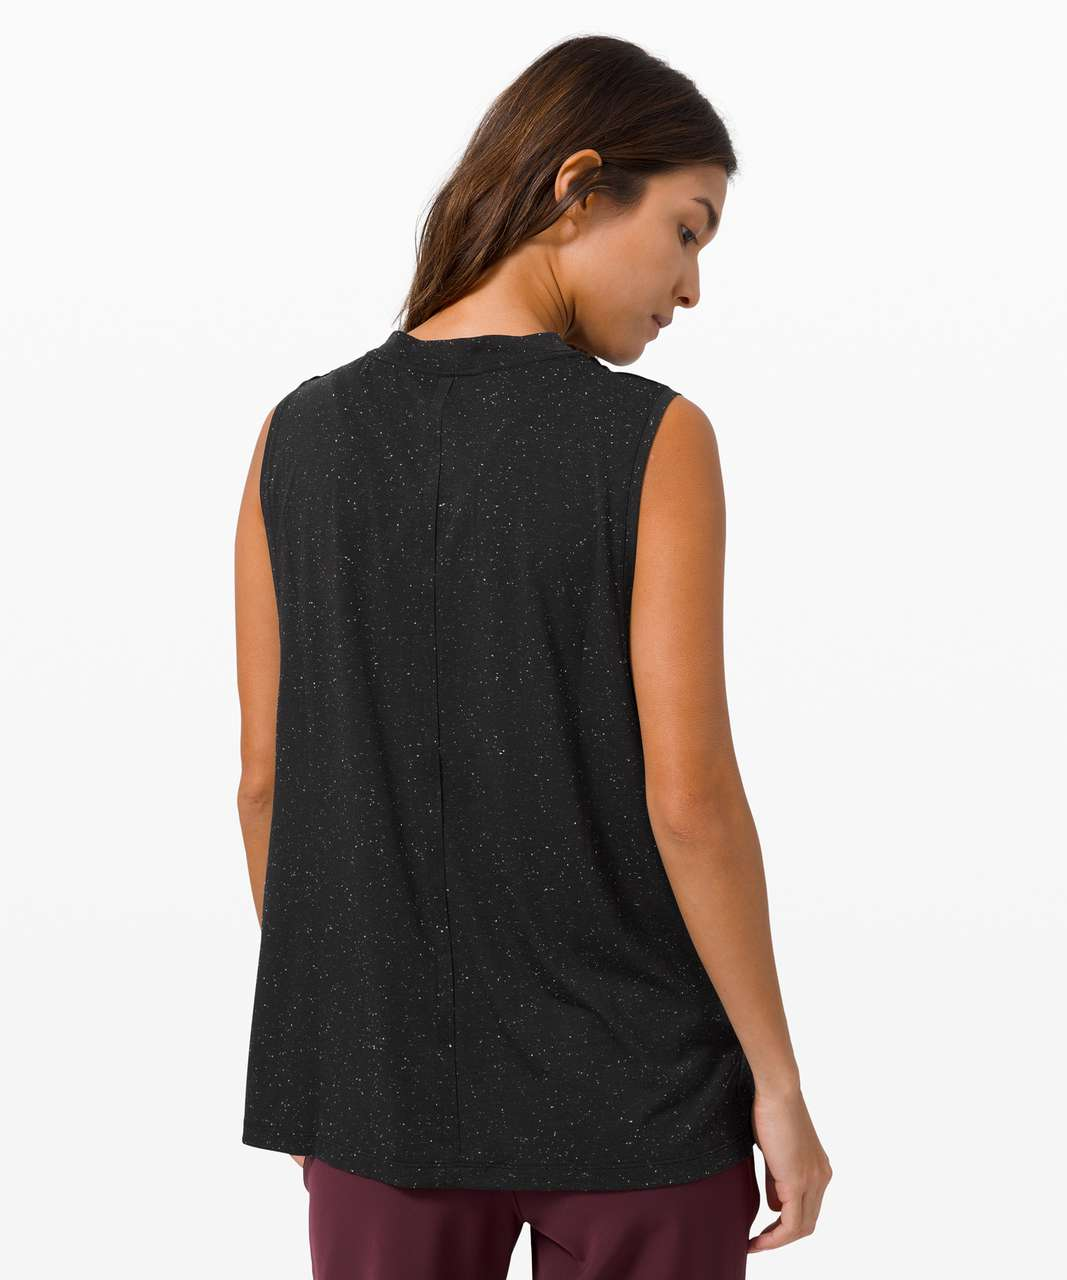 Lululemon All Yours Boyfriend Tank - Black / White